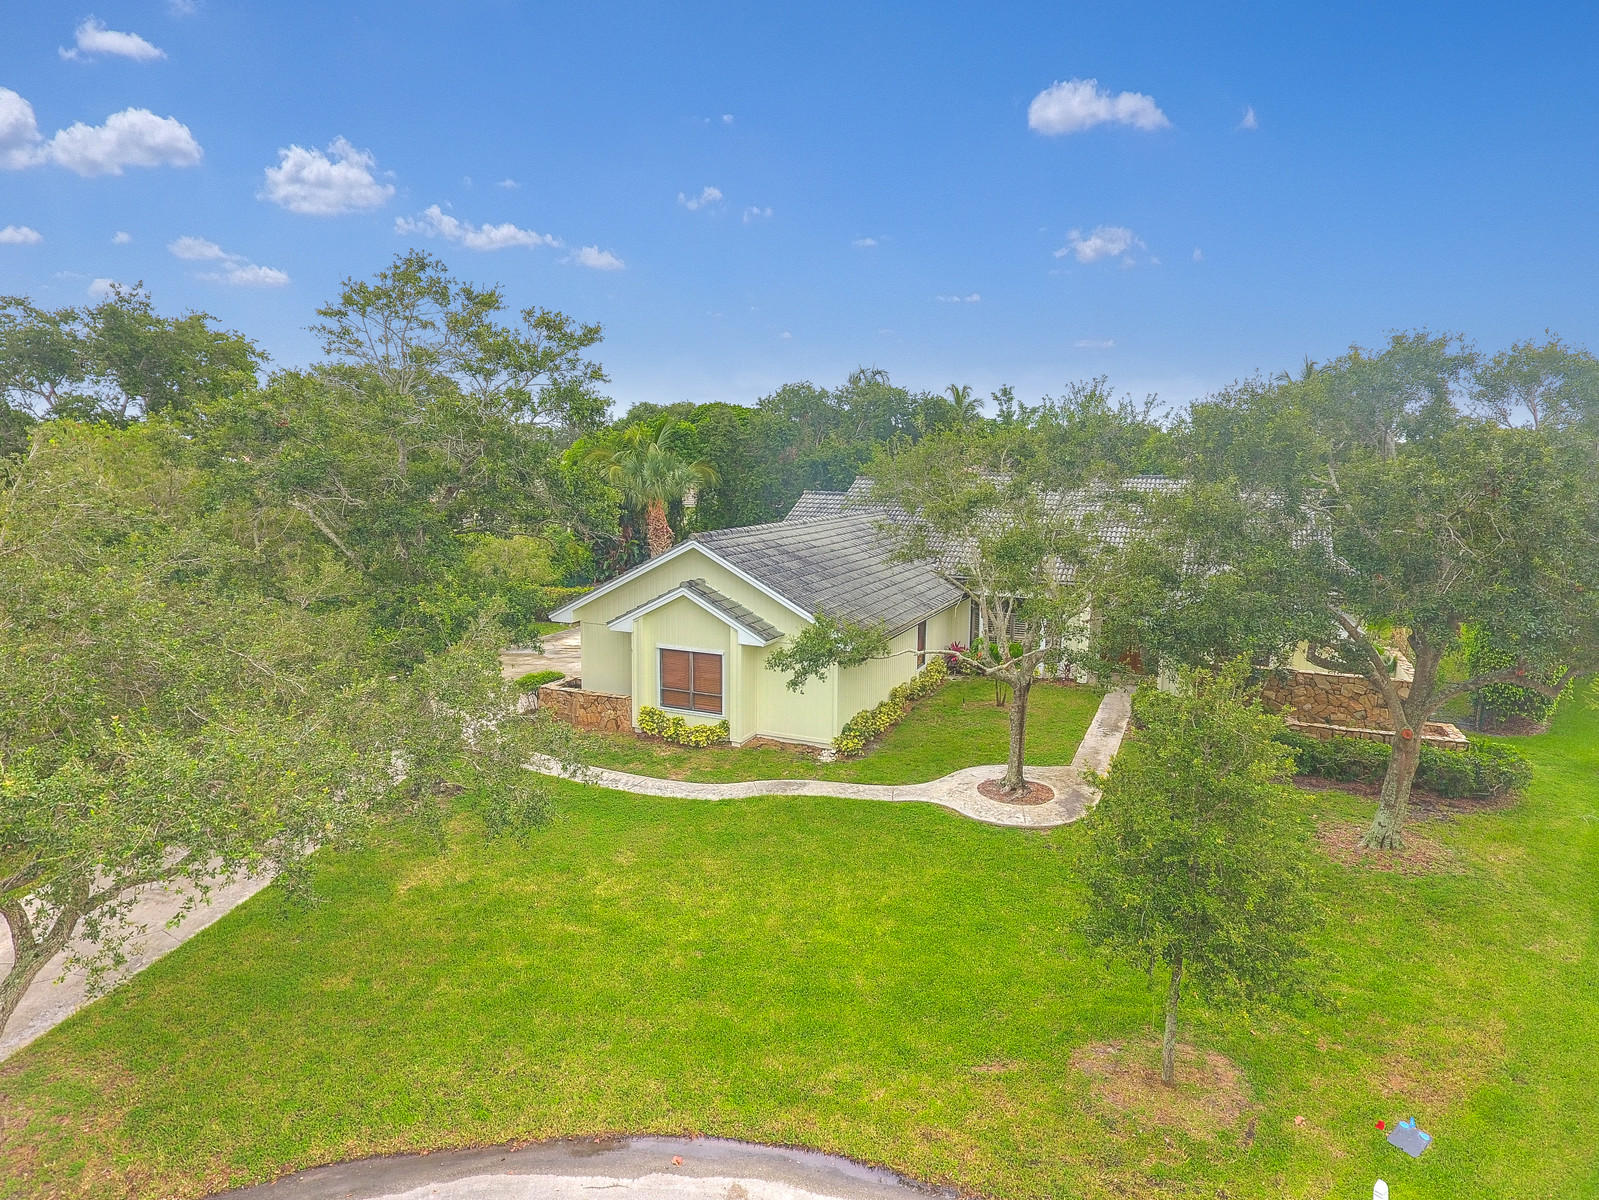 4 bedroom 2.5 bath pool home on 1/2 acre offering Turtle Creek golf course views. Large 3 Car Garage. New pool finish and deck. Newer: barrel tileroof, hardwood and ceramic floors, paint and landscaping. Vaulted ceilings, fenced rear yard for your dogs. This very private setting is a 'must see'.